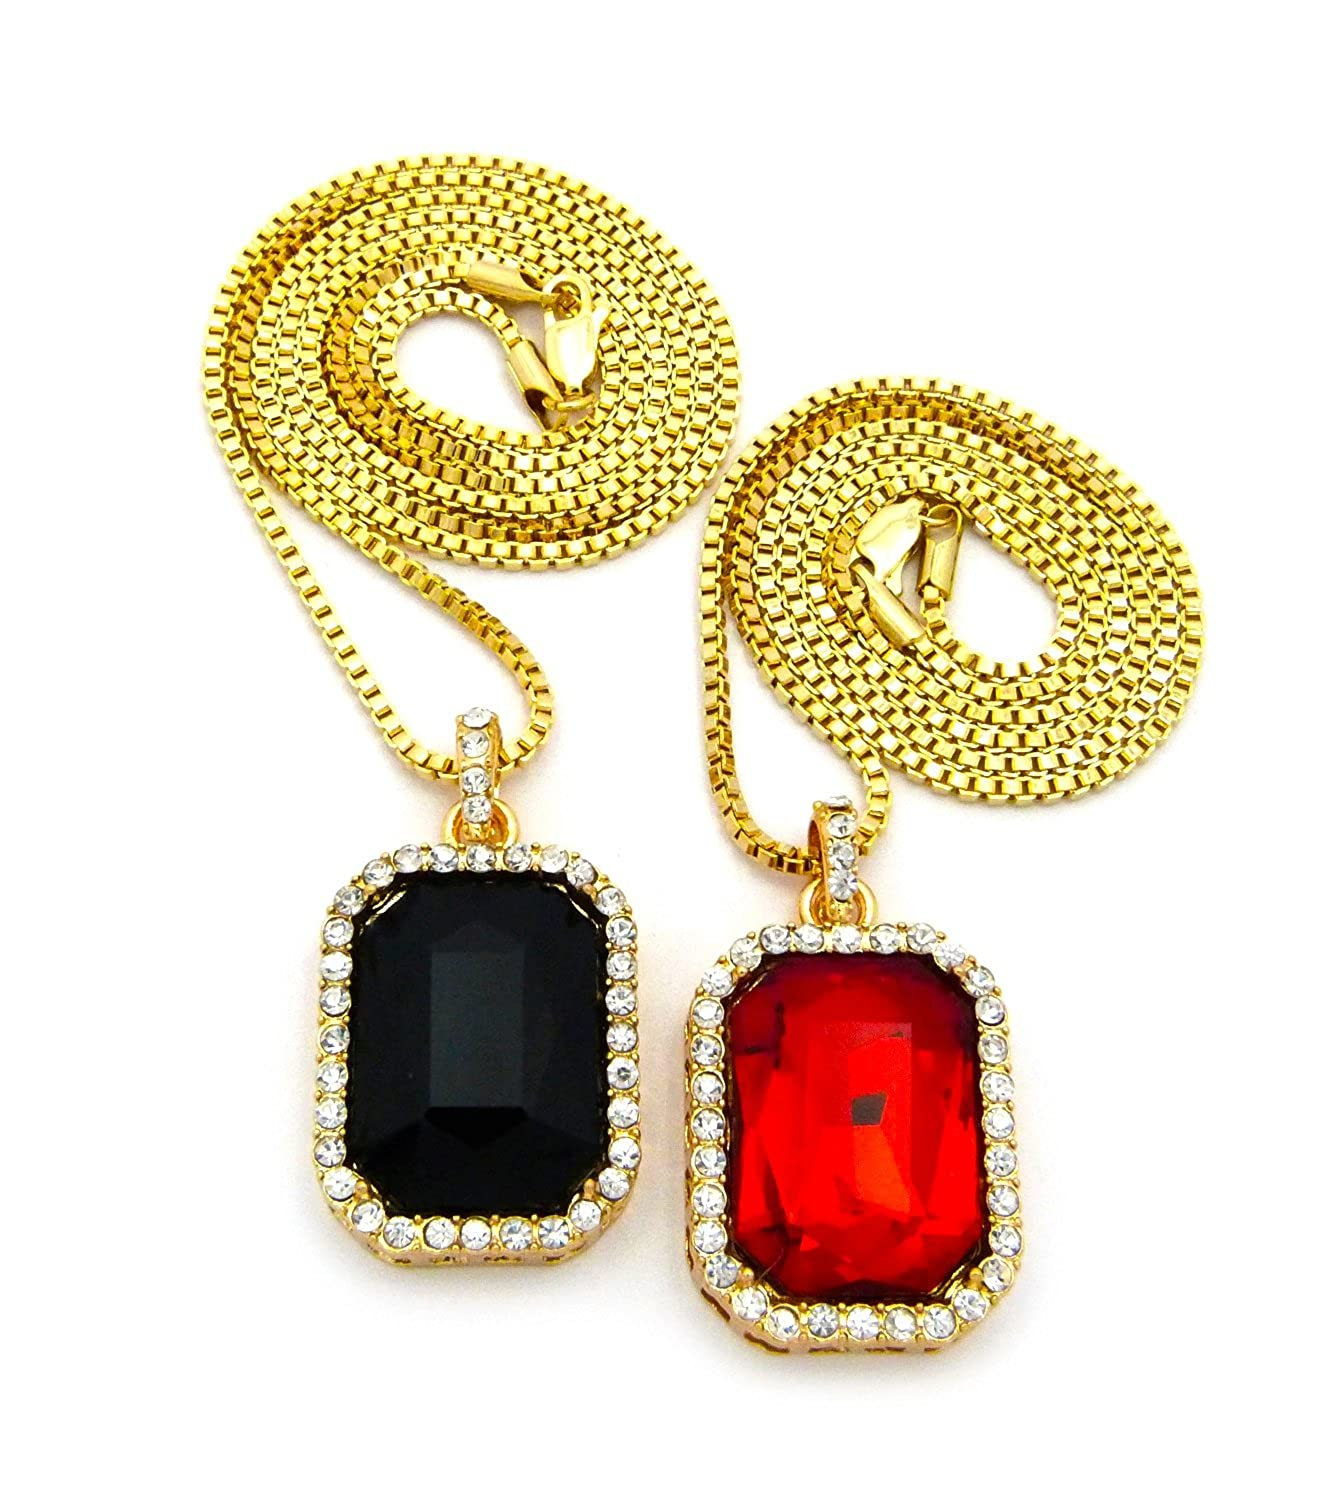 Mens iced out hip hop gold red ruby black onyx pendant box chain mens iced out hip hop gold red ruby black onyx pendant box chain necklace set amazon jewelry aloadofball Gallery